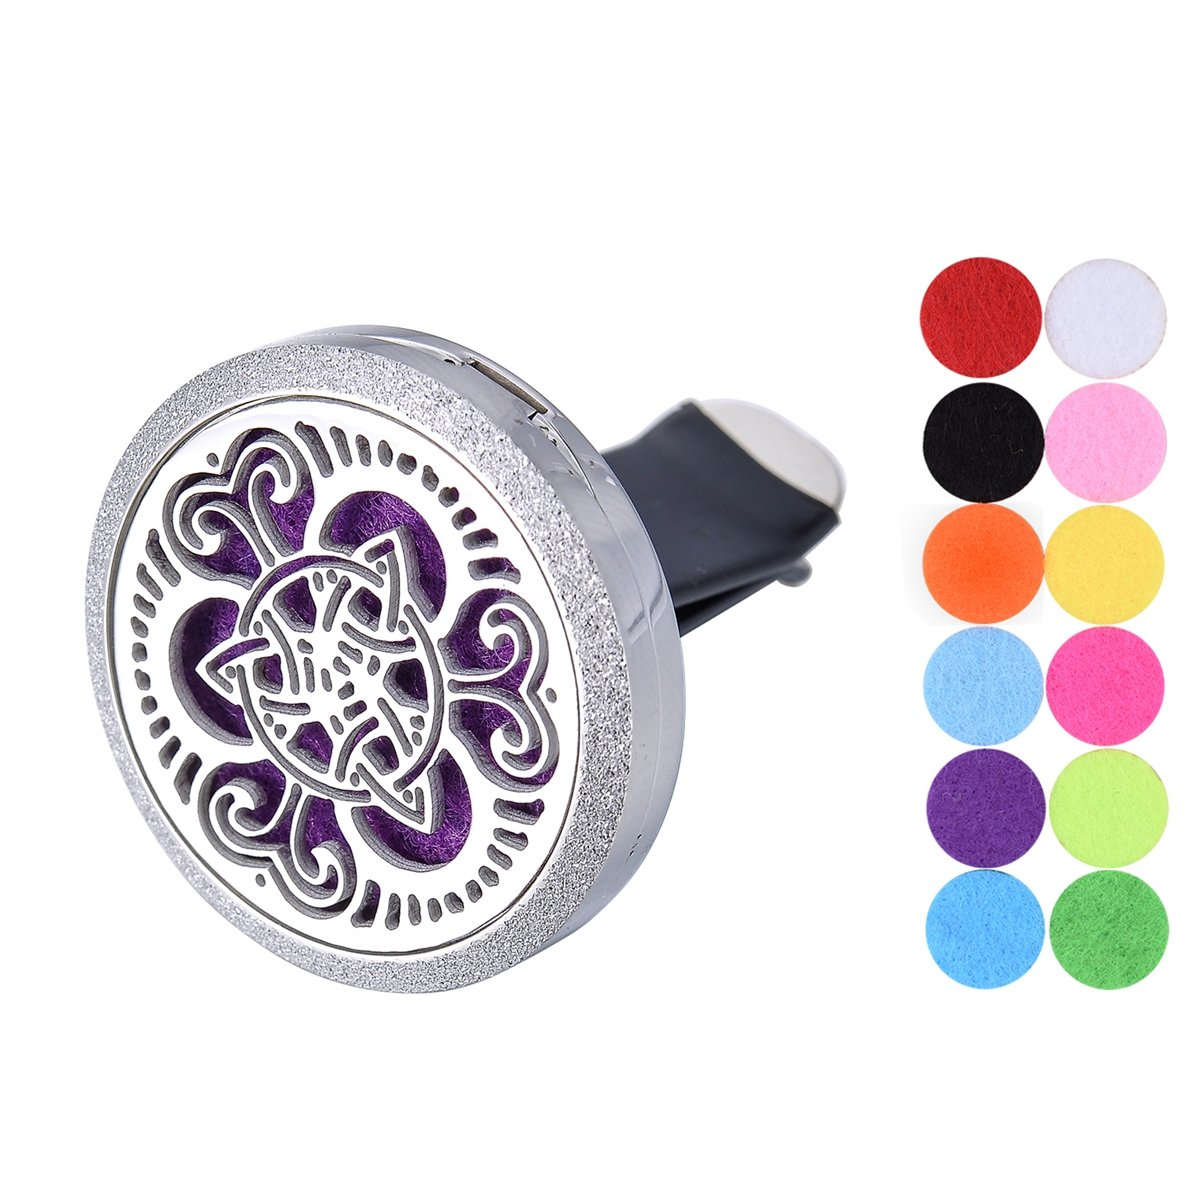 Car Air Freshener Aromatherapy Essential Oil Diffuser Vent Clip Stainless Steel Rhinestone Celtic Knot Locket with 12 Washable Felt Pads Supreme glory SGto-B286838